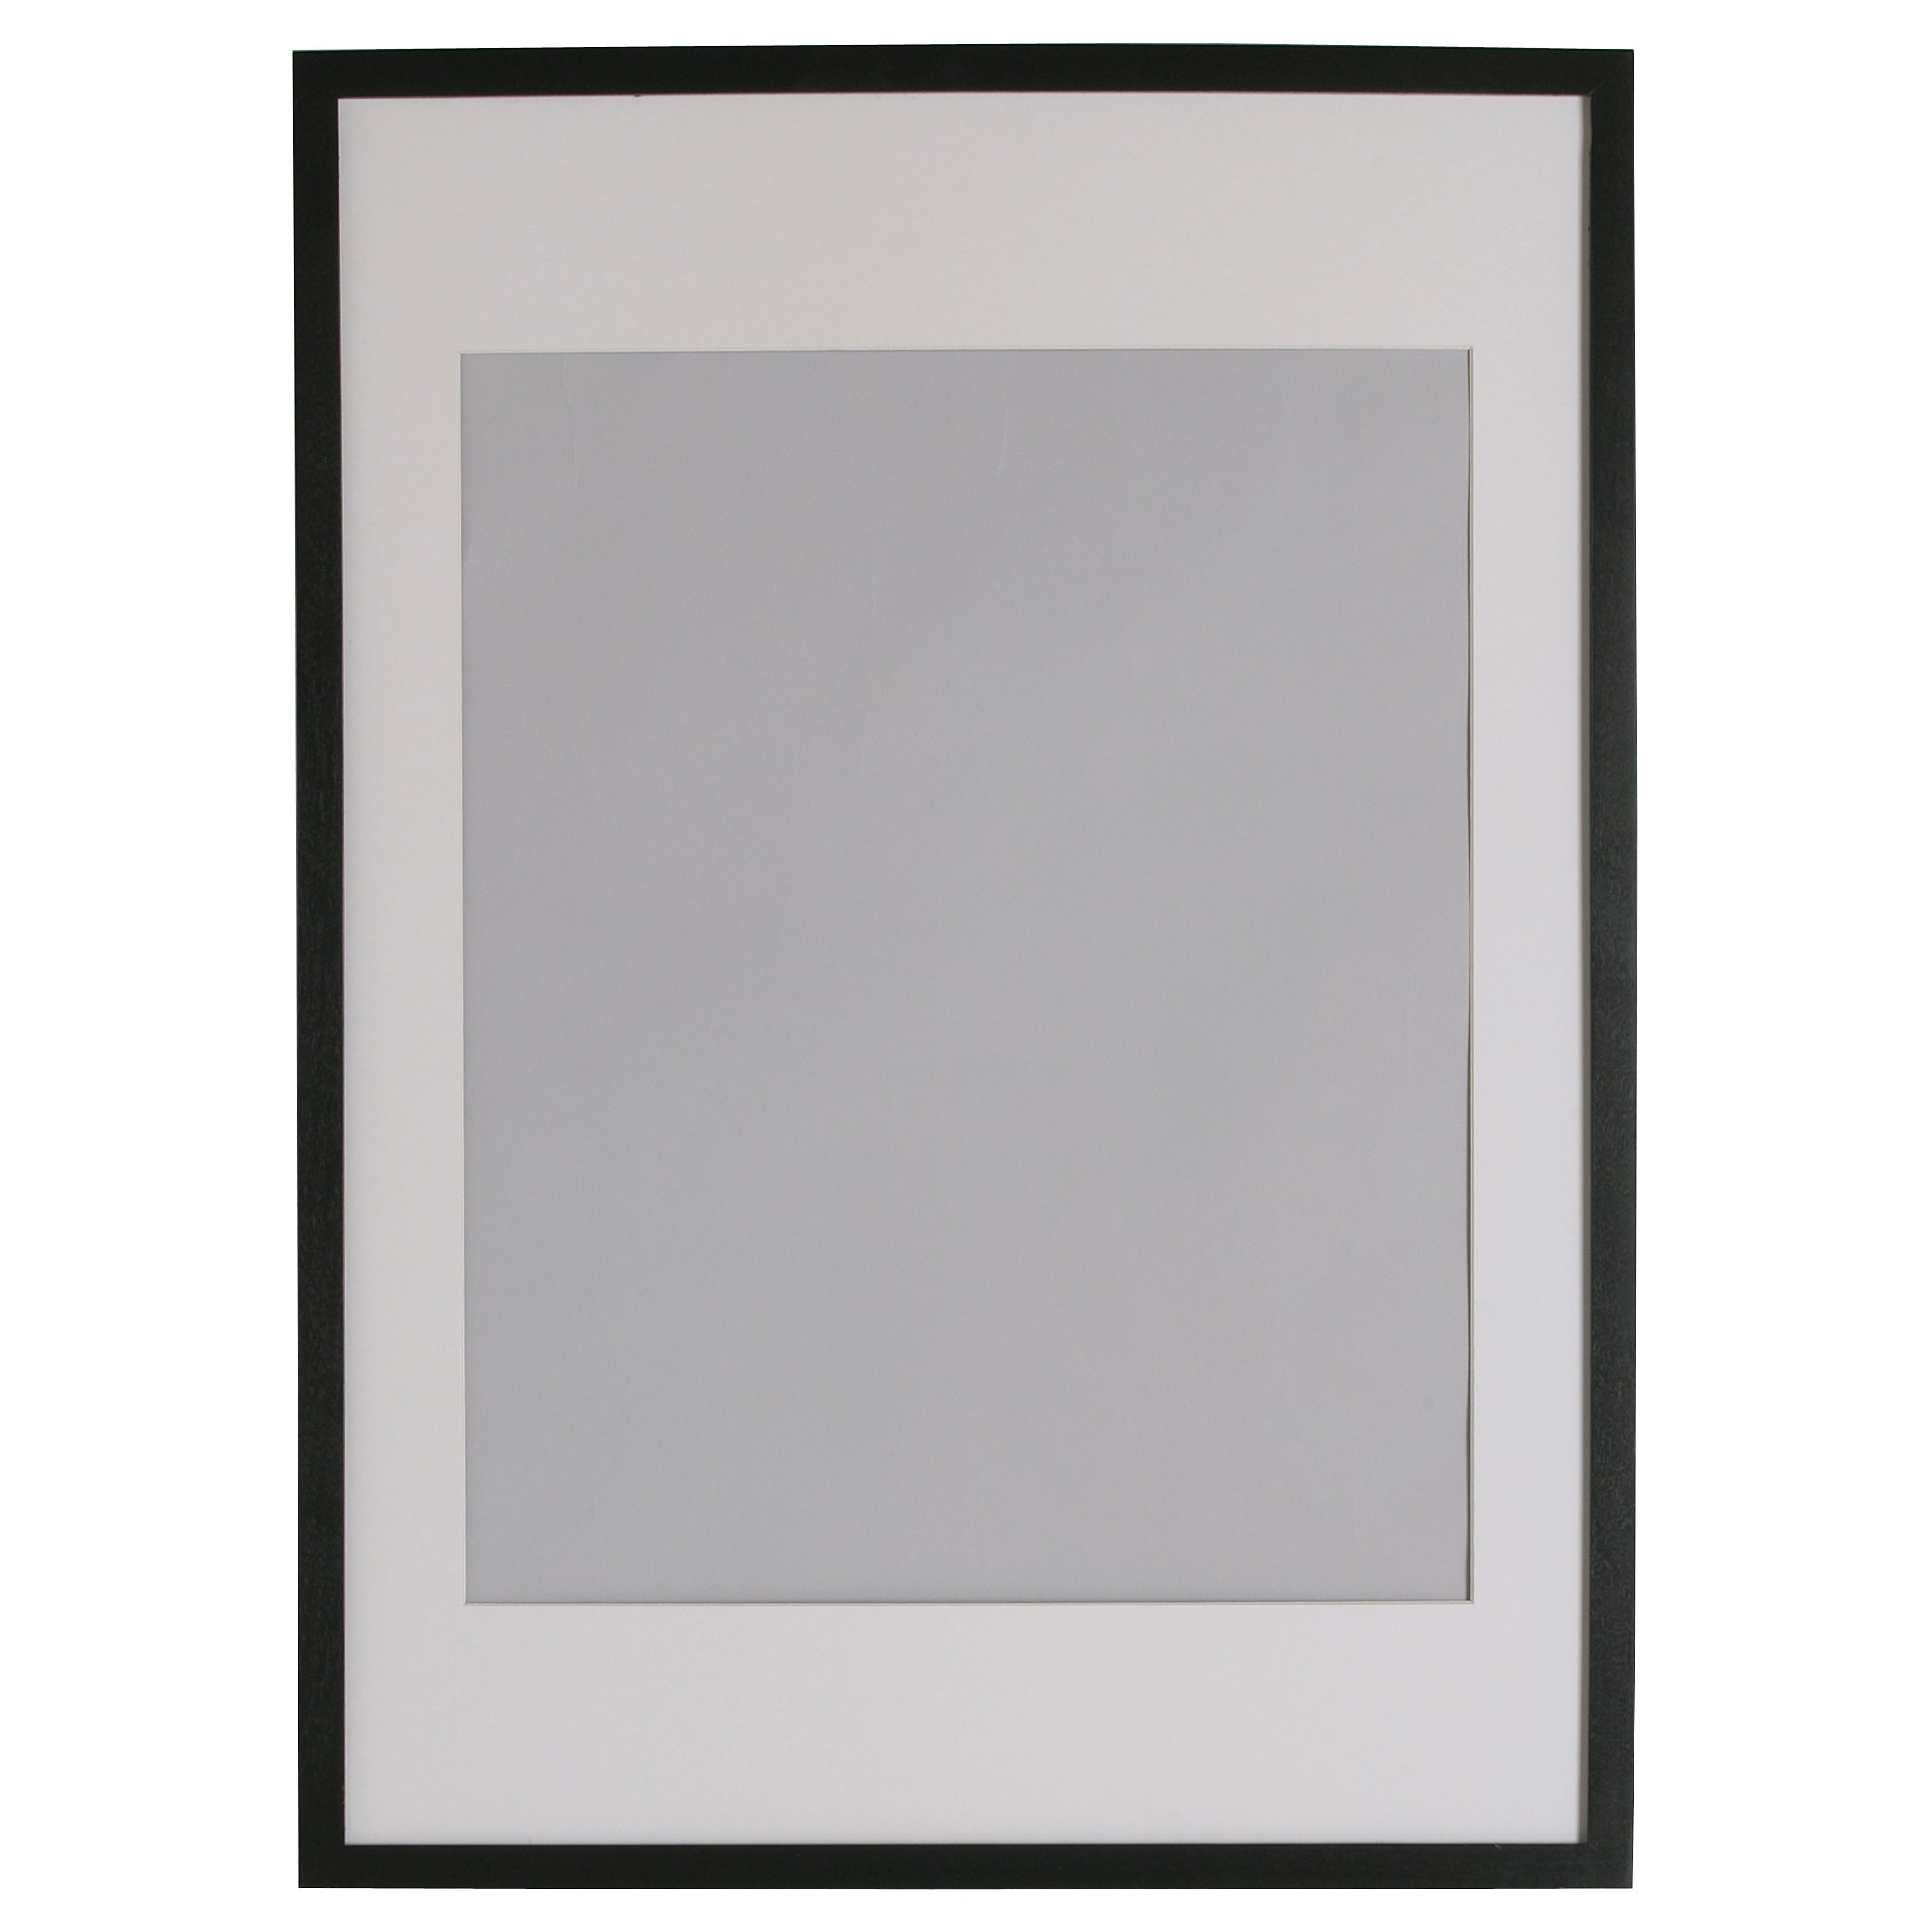 ribba frame black picture without mat width 19 picture without mat